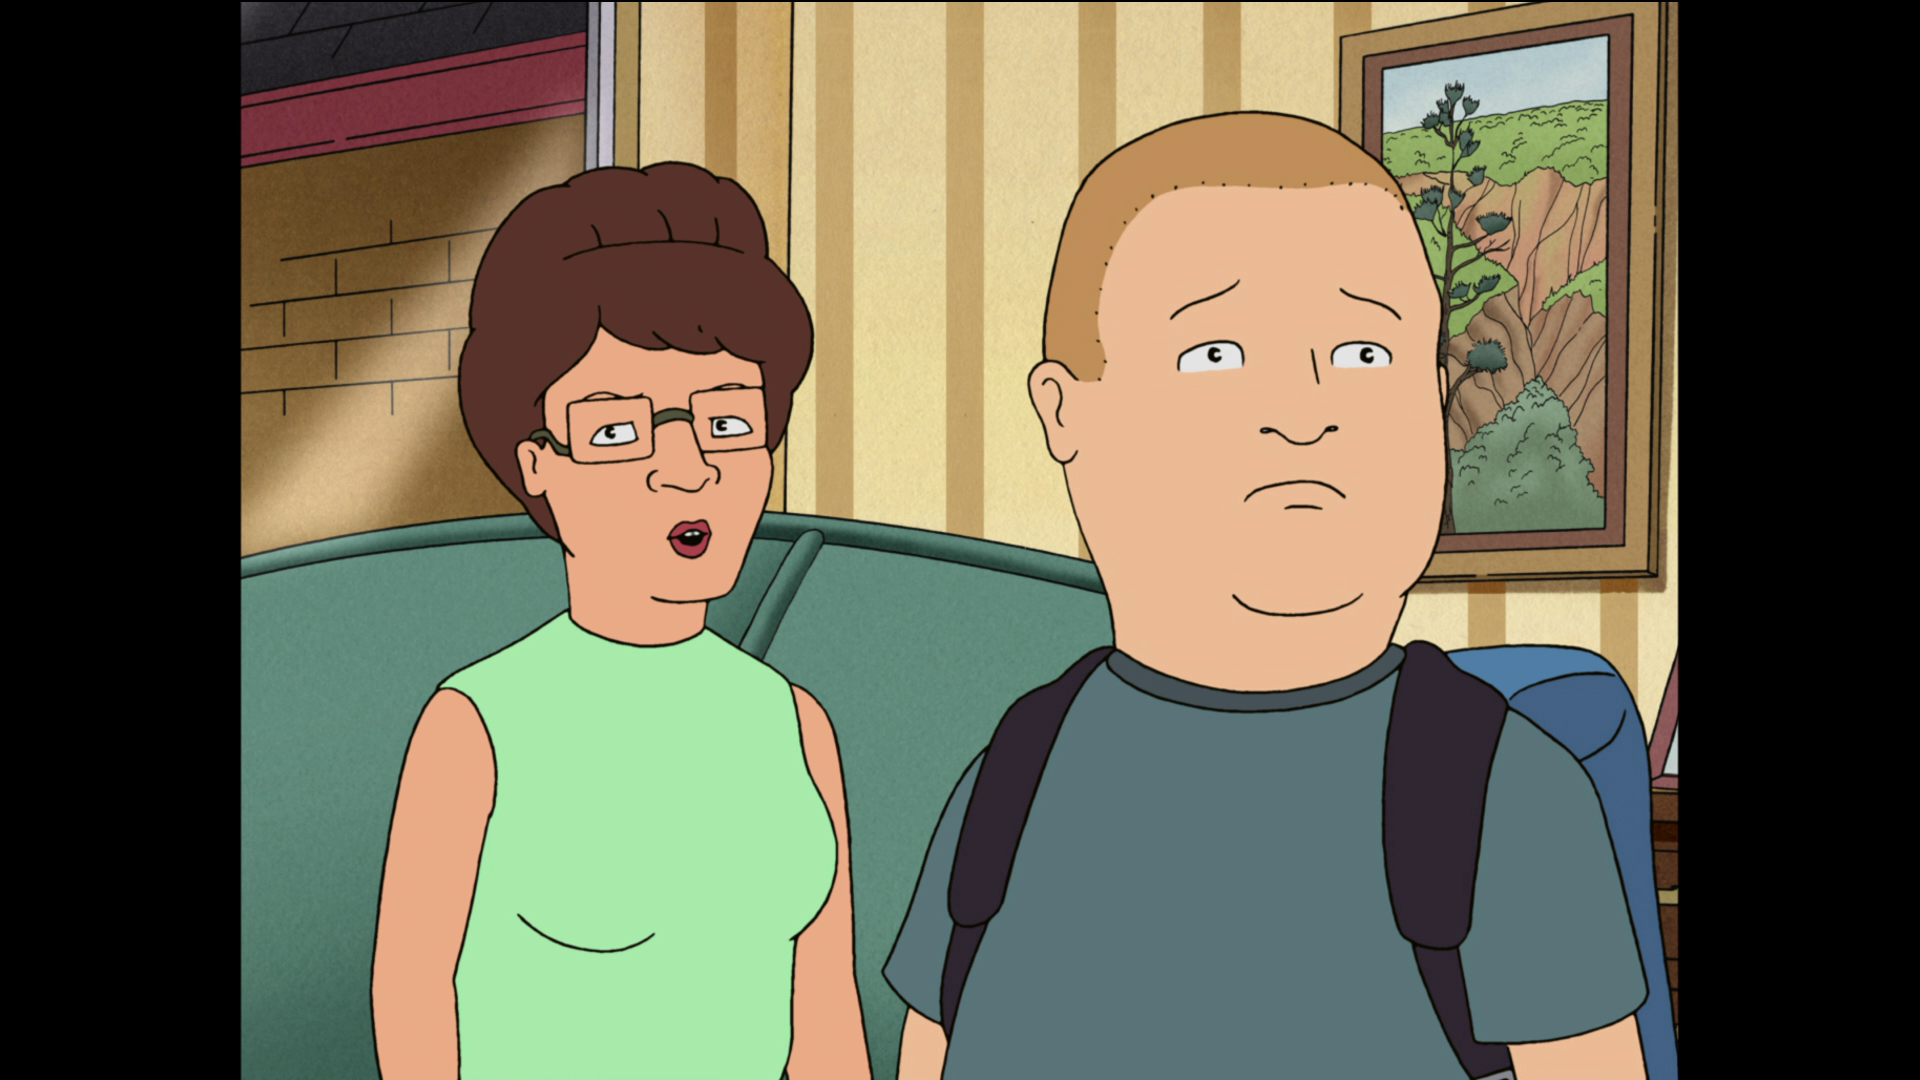 King of the Hill S13E05 BluRay REMUX 1080p AVC DTS-HD MA 5.1 - KRaLiMaRKo